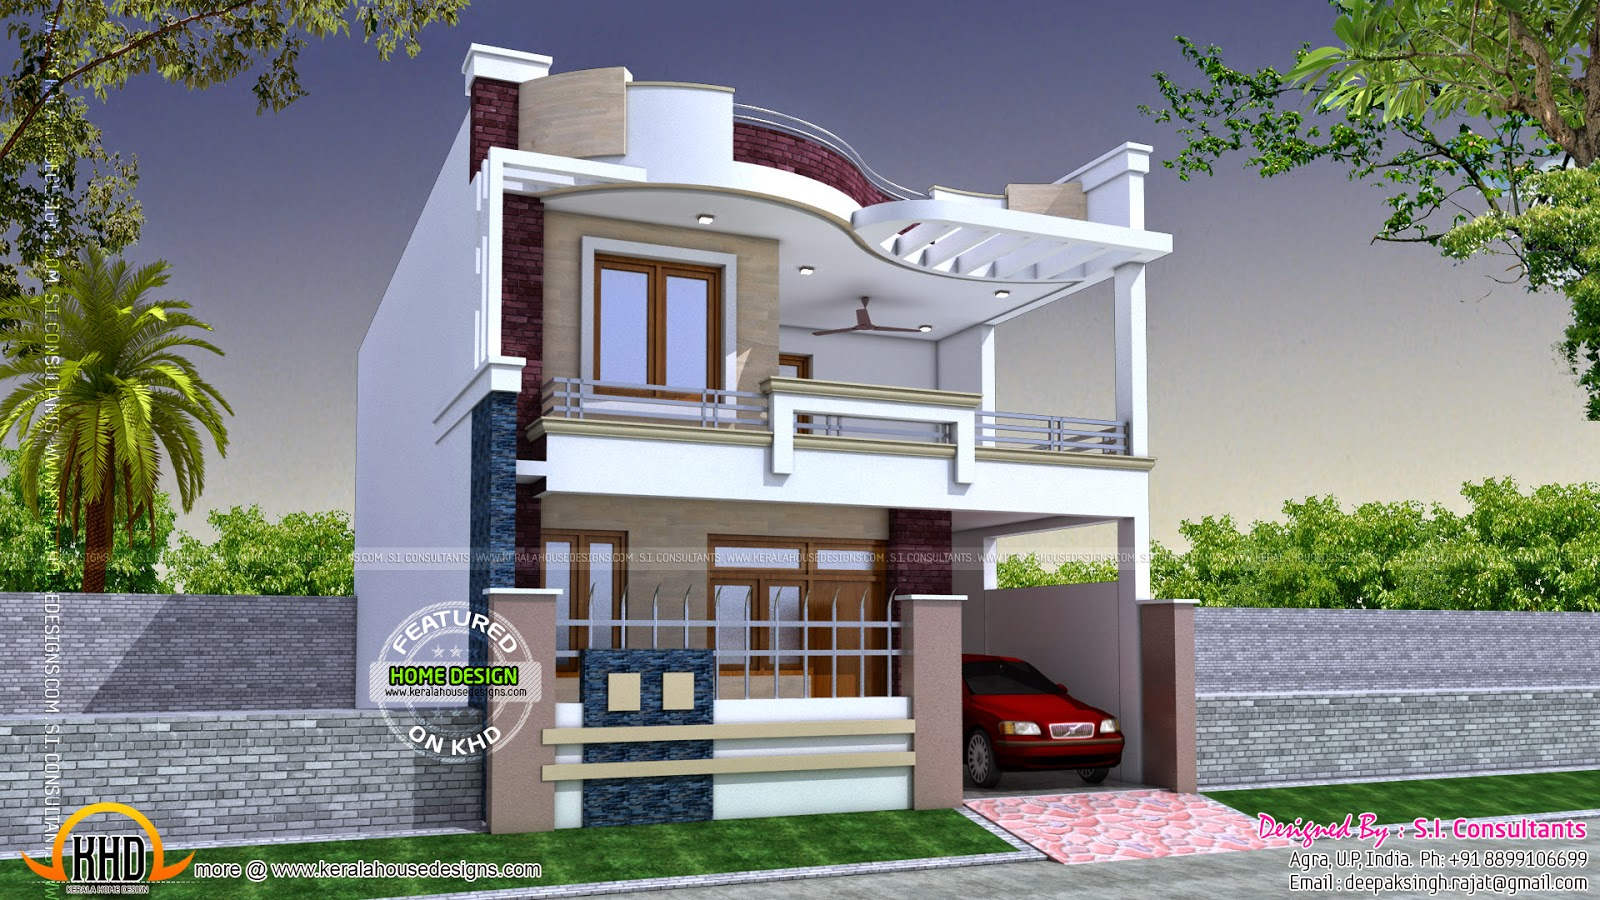 Modern indian home design kerala home design and floor plans for Home building design